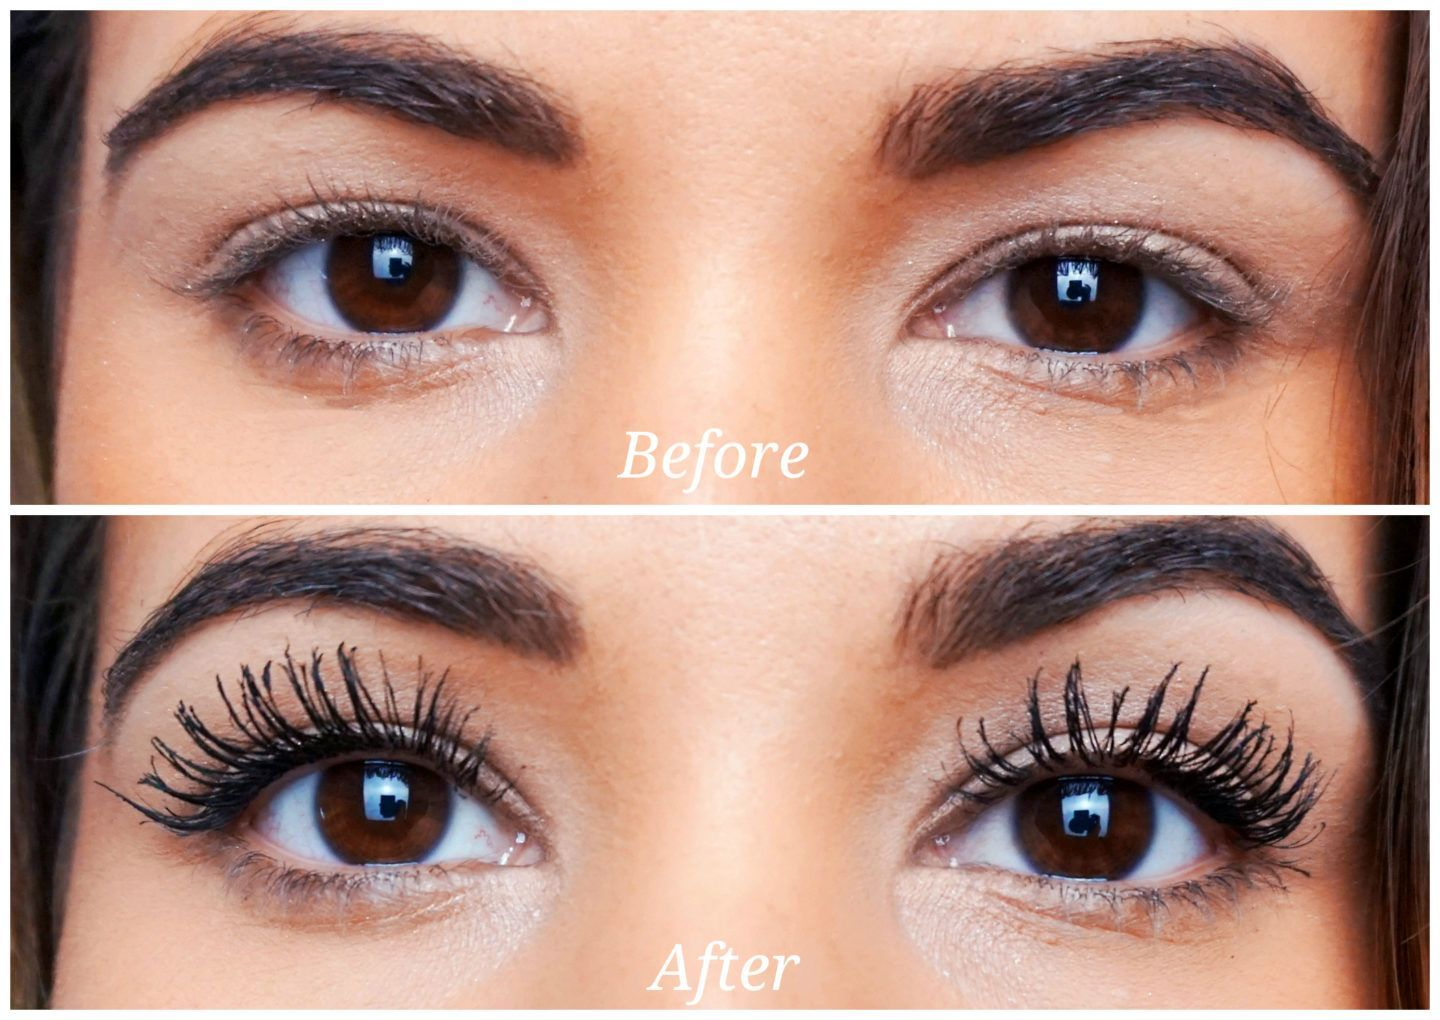 7c365fea034 L'Oreal Paris False Lash X-Fiber Mascara Review - Through Mona's Eyes  #EyeLashesGrowth